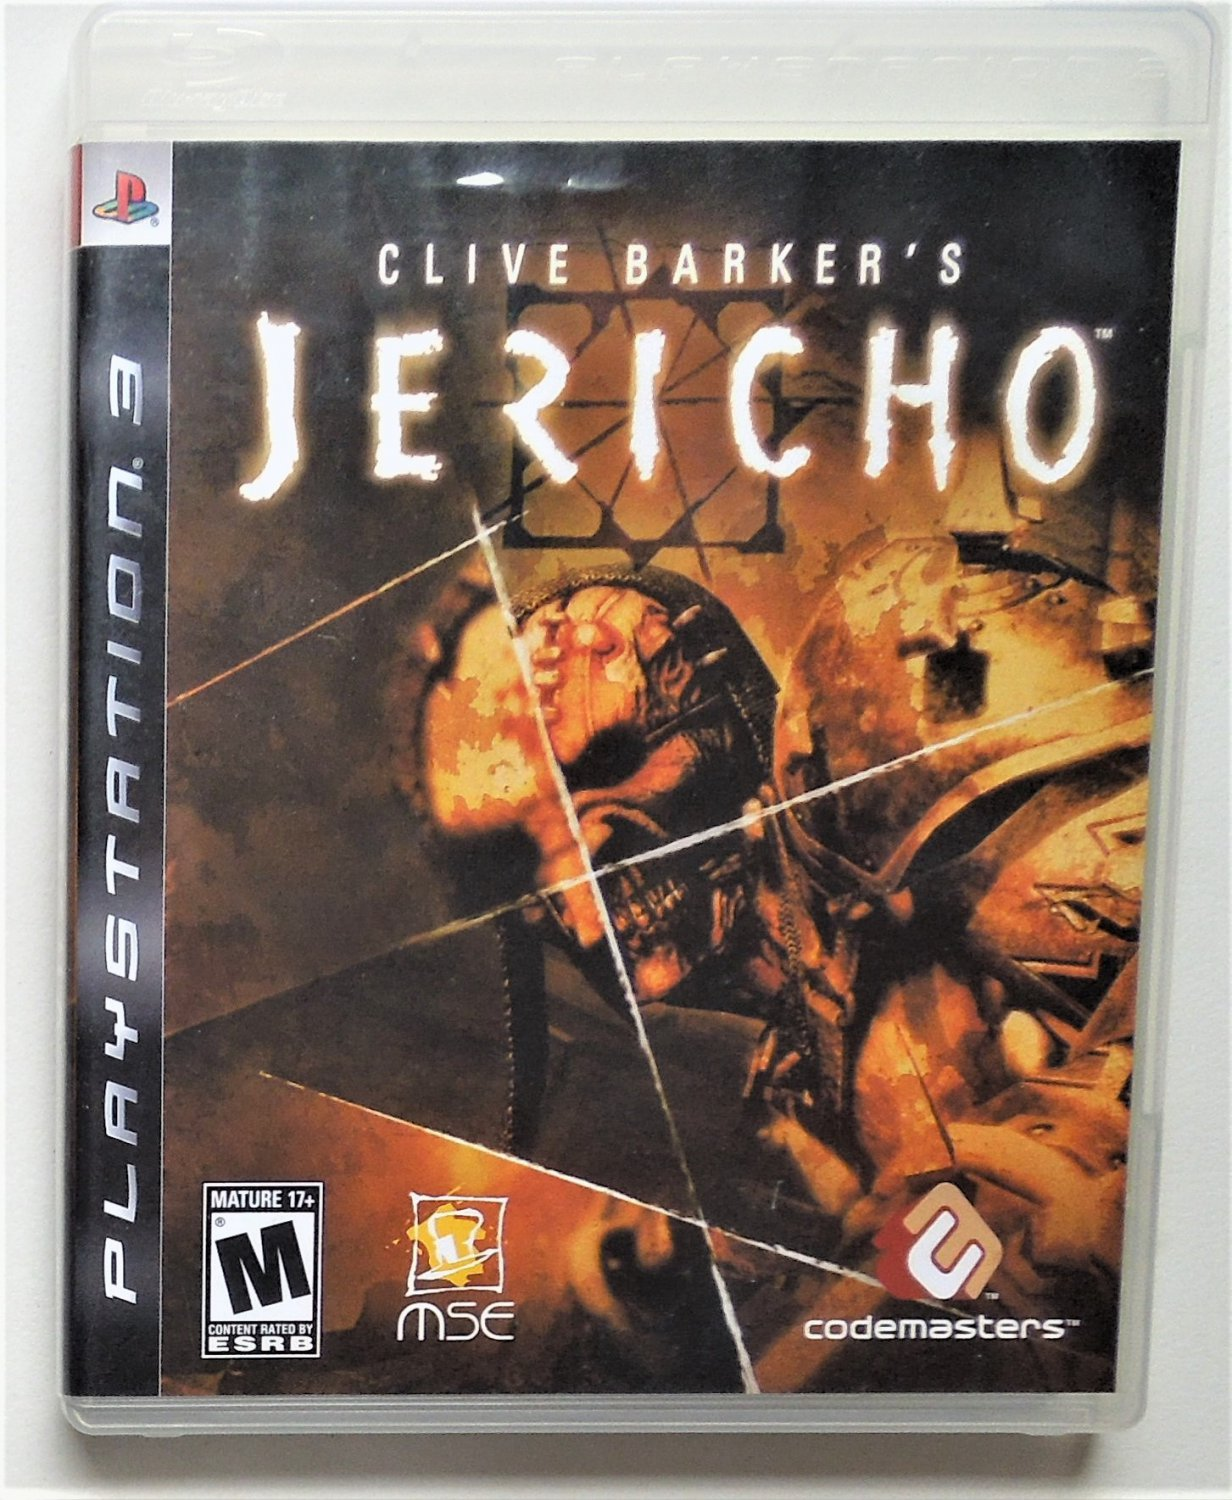 2006 Codemasters Clive Barker's Jericho For The PS3 Game System Complete